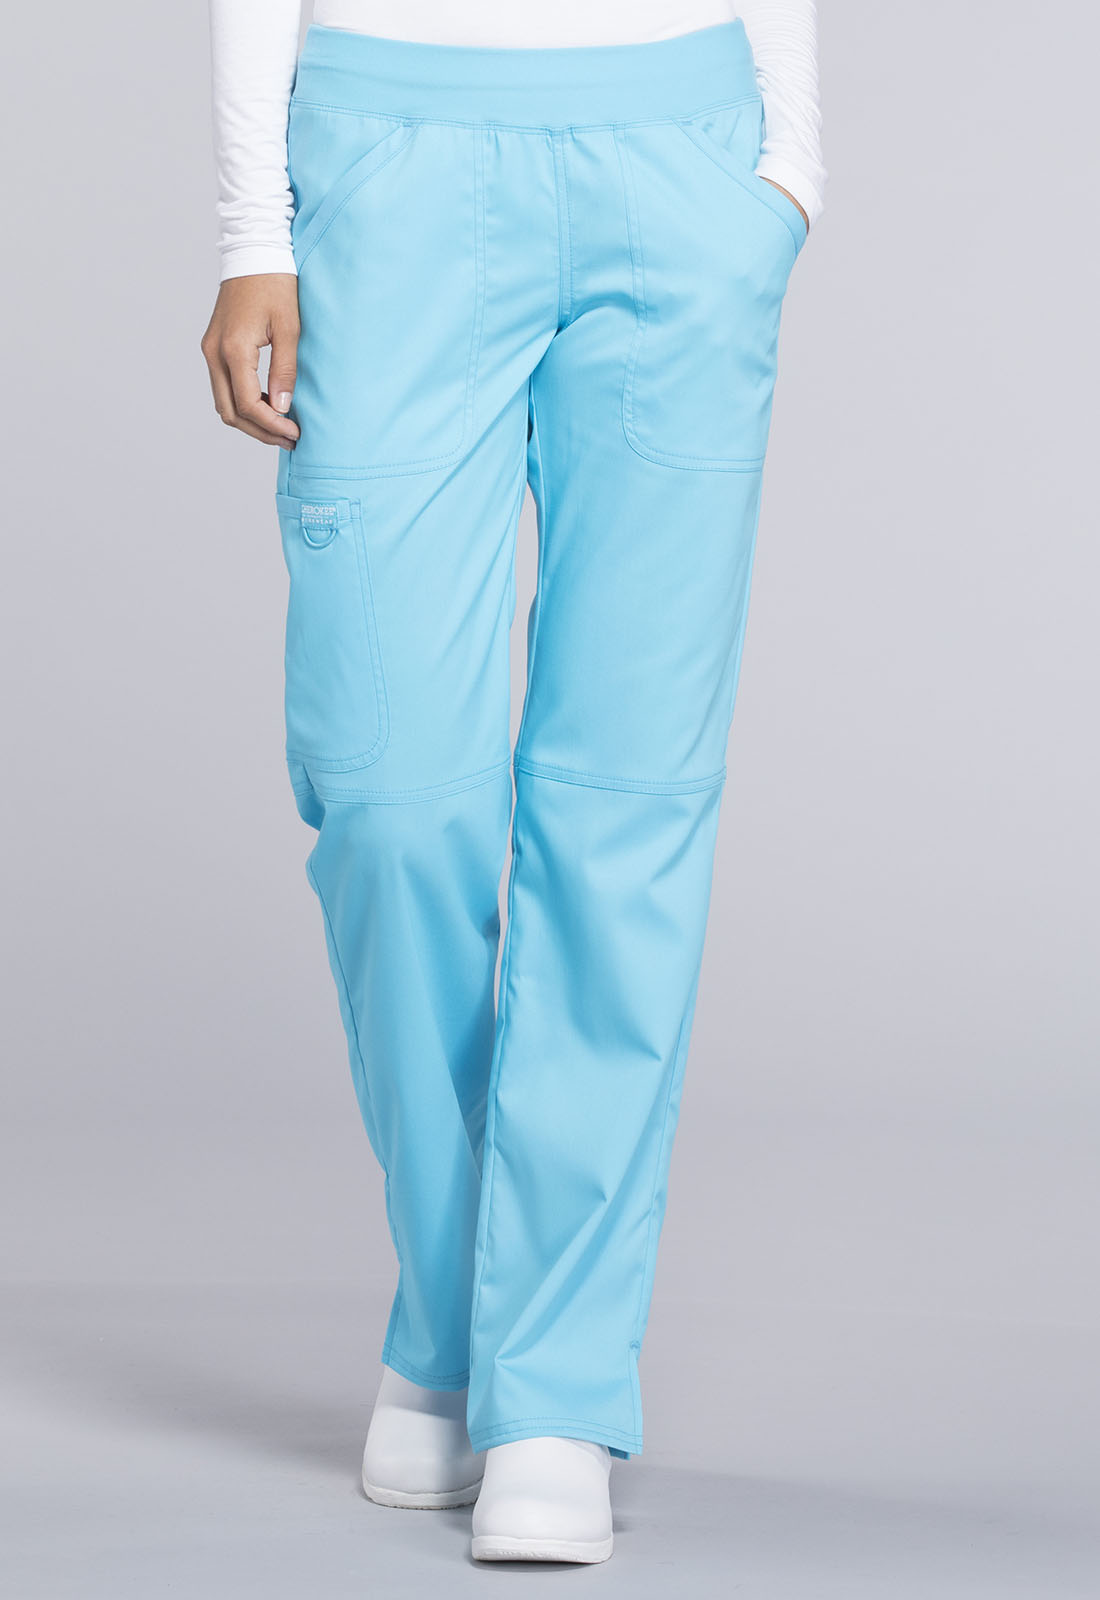 7a09f71b9b4 Cherokee Workwear. WW Revolution Mid Rise Straight Leg Pull-on Pant in  Turquoise (Petite)